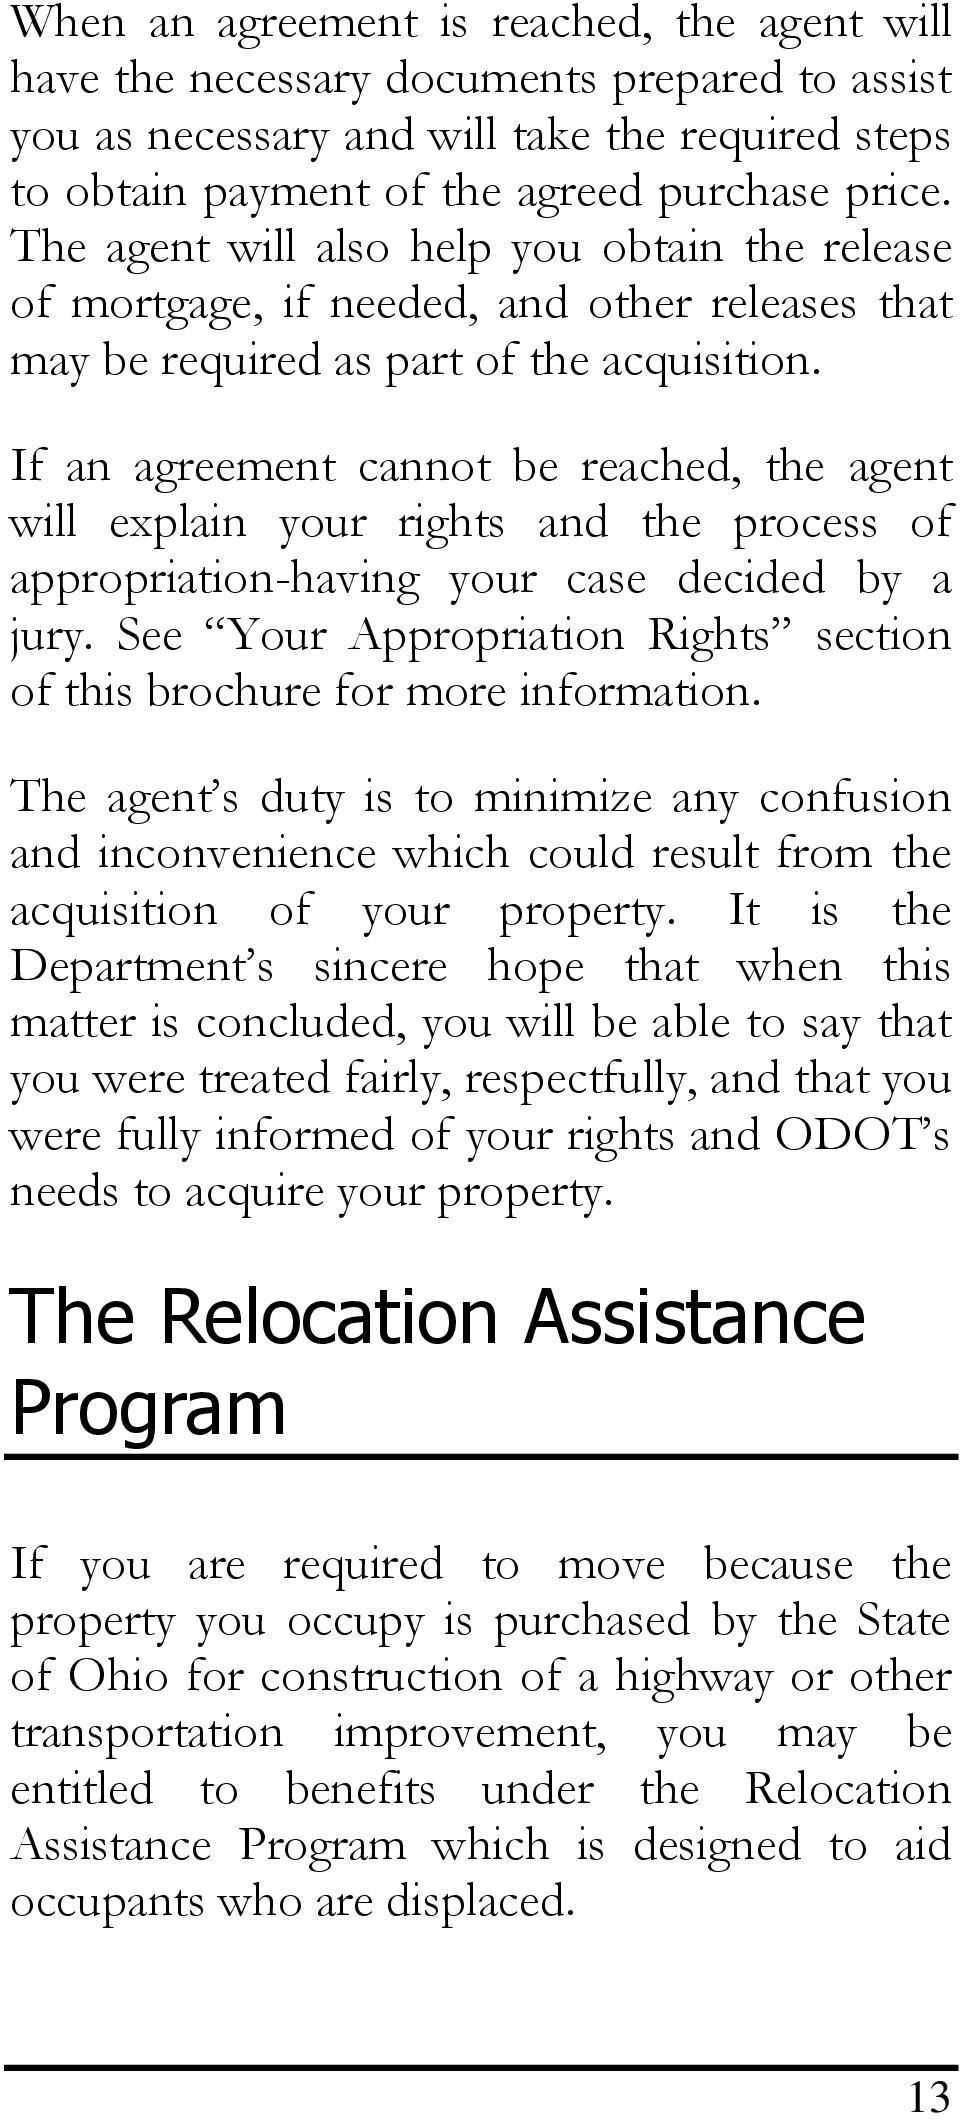 If an agreement cannot be reached, the agent will explain your rights and the process of appropriation-having your case decided by a jury.